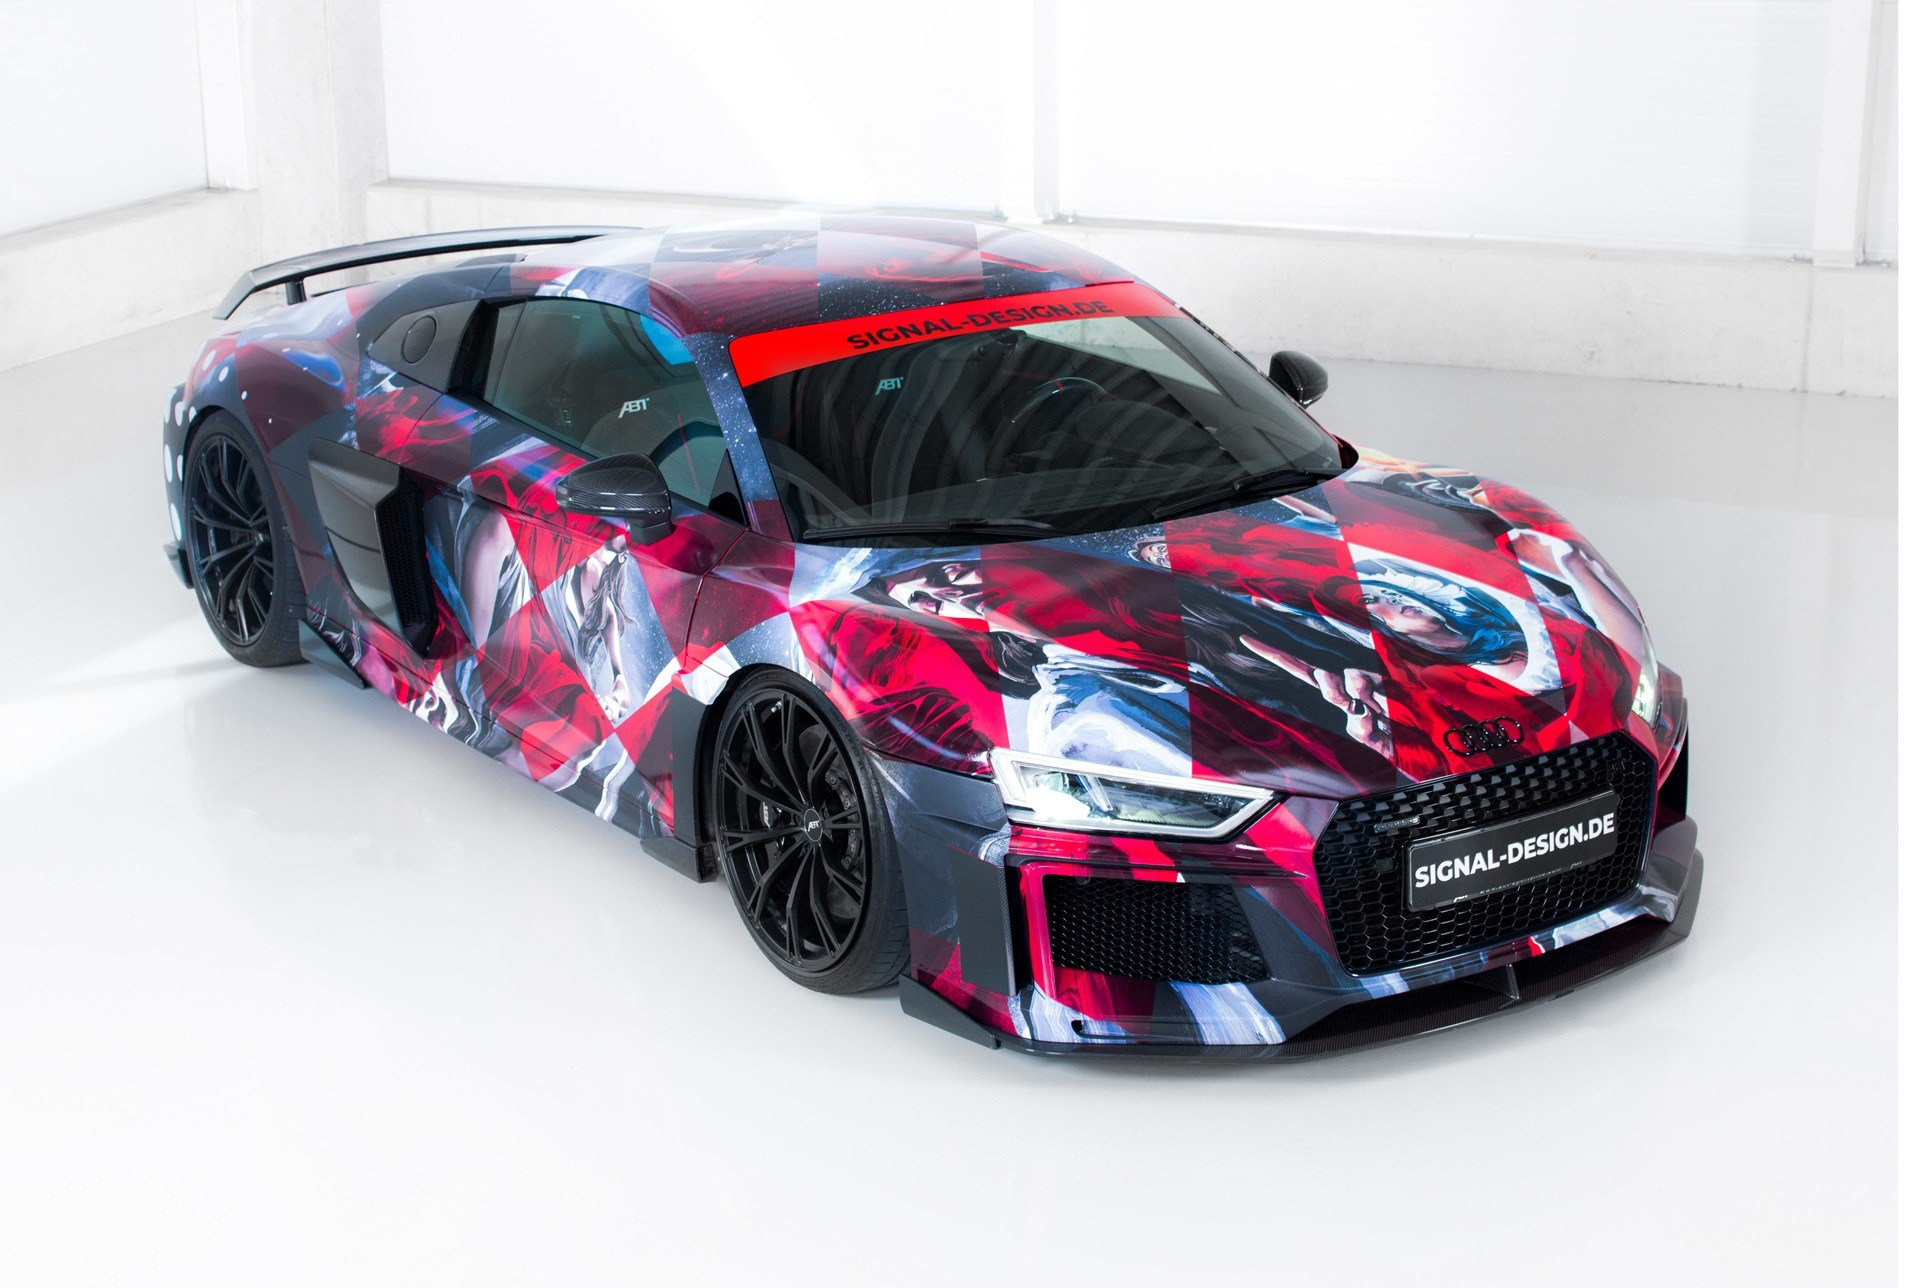 Latest Abt Sportsline Readies Audi R8 Art Car For 2018 Wörthersee Free Download